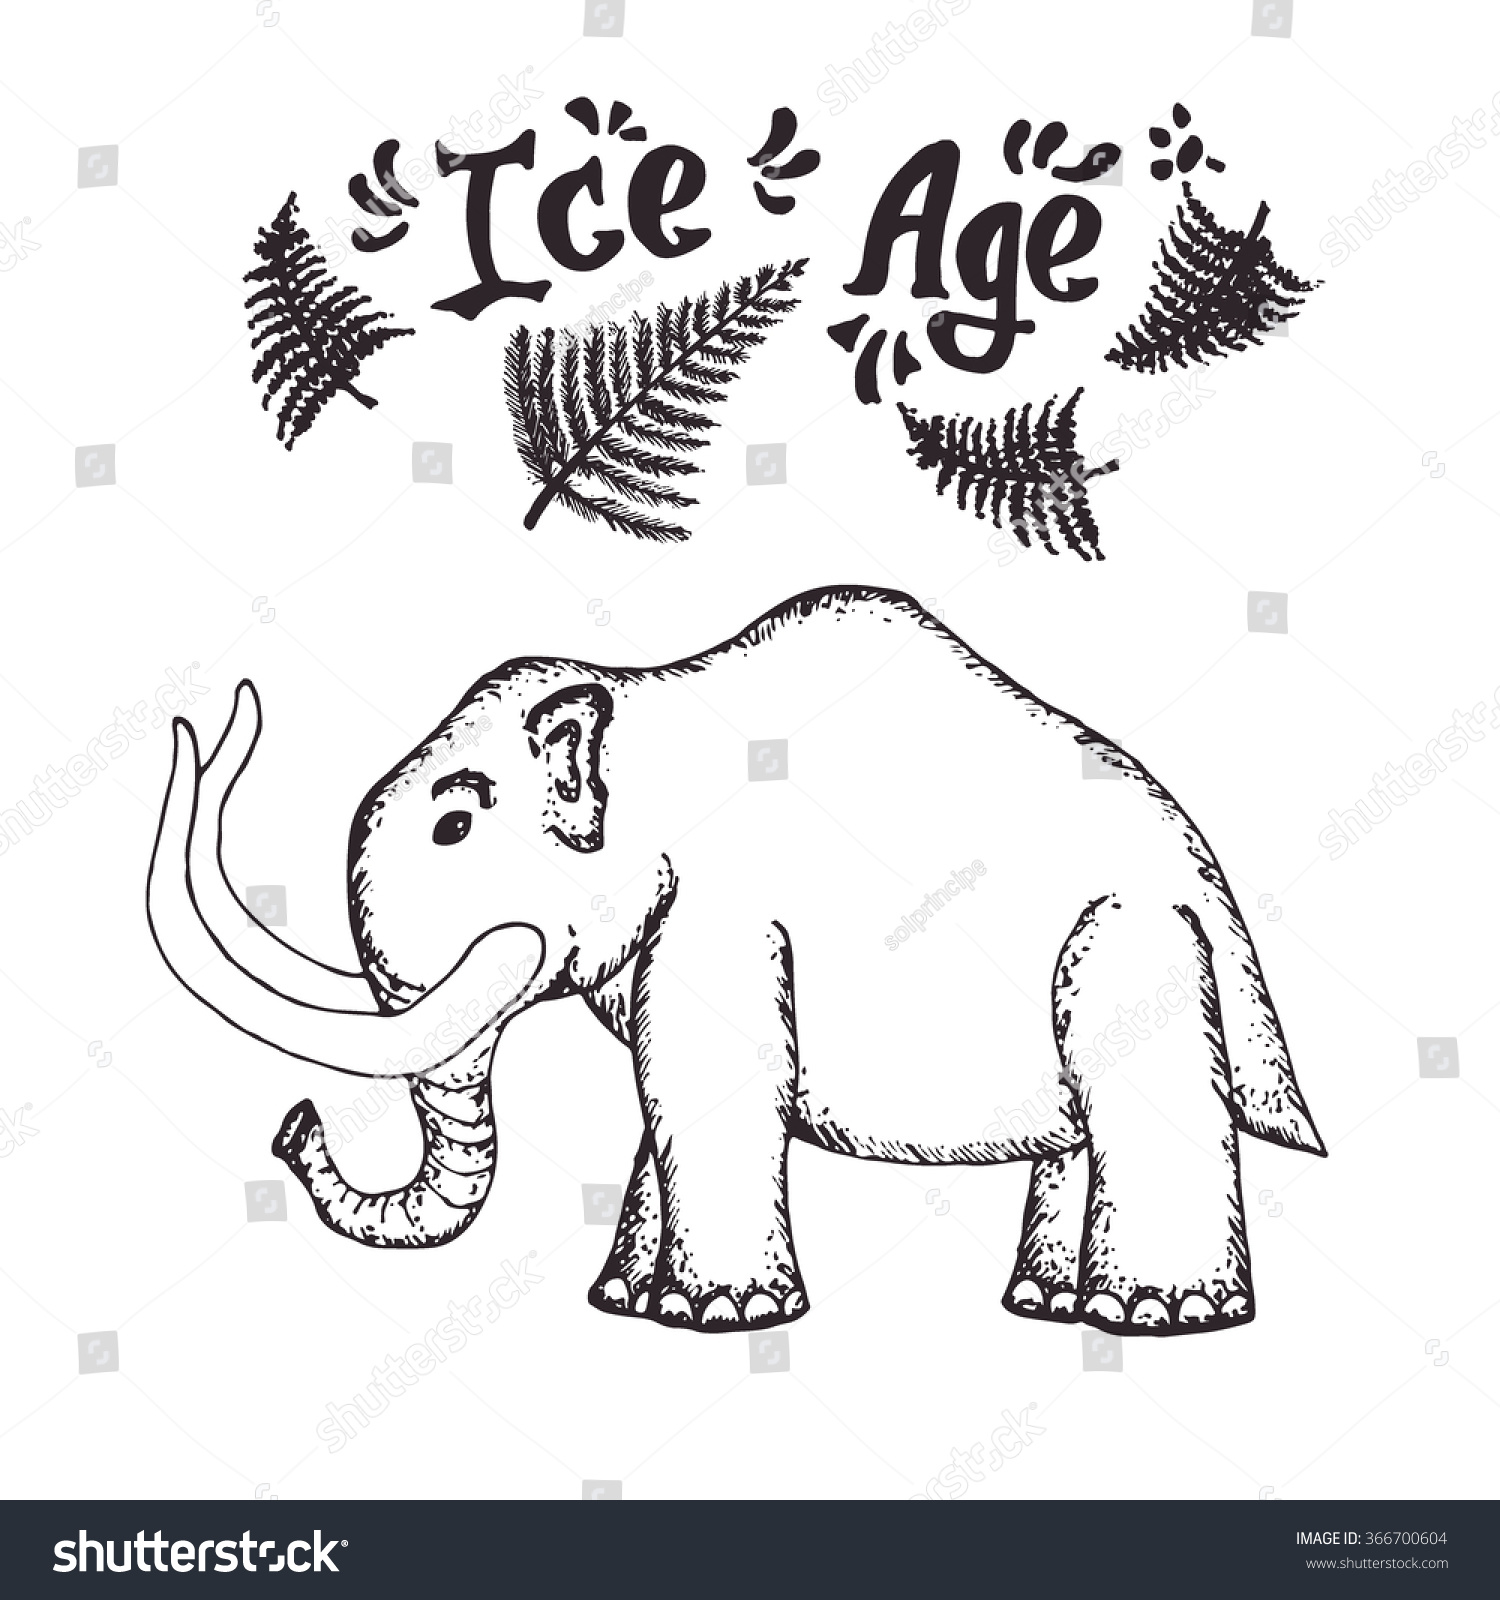 Illustration Hand Drawn Mammoth Ice Age Stock Vector (Royalty Free ...